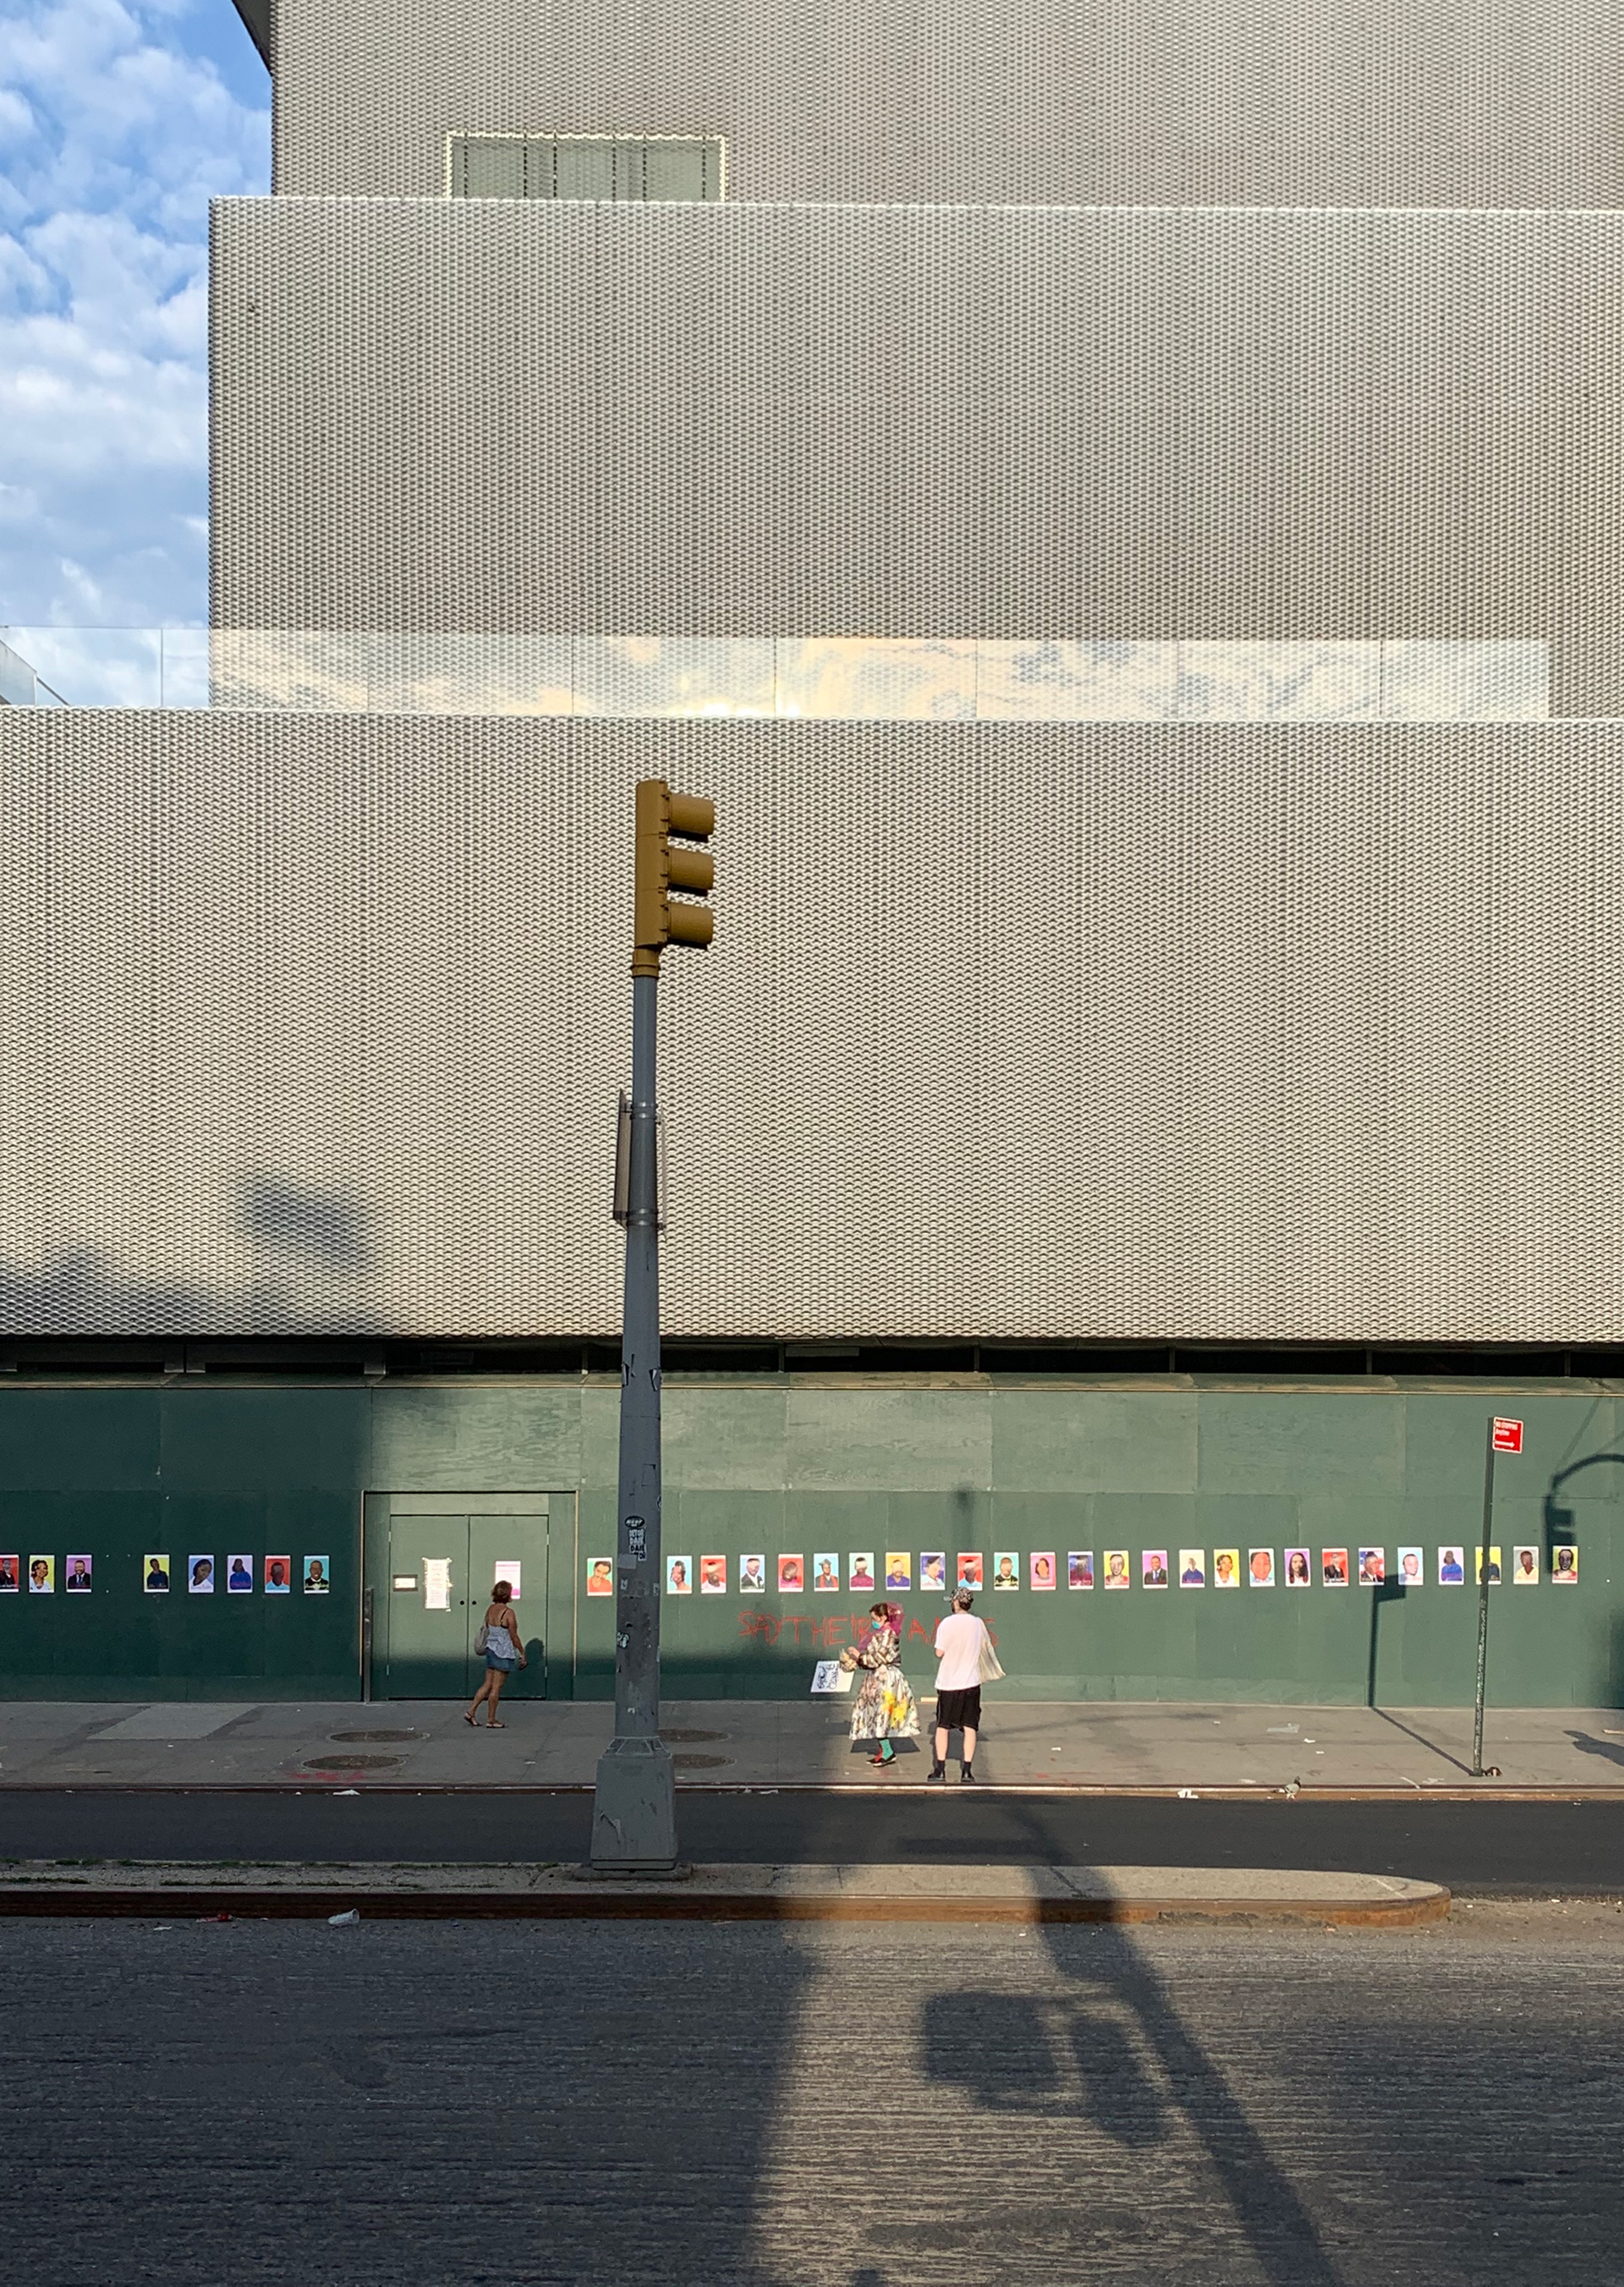 New Museum, Lower East Side, Manhattan, New York City, June 10, 2020. © Lucie Rebeyrol